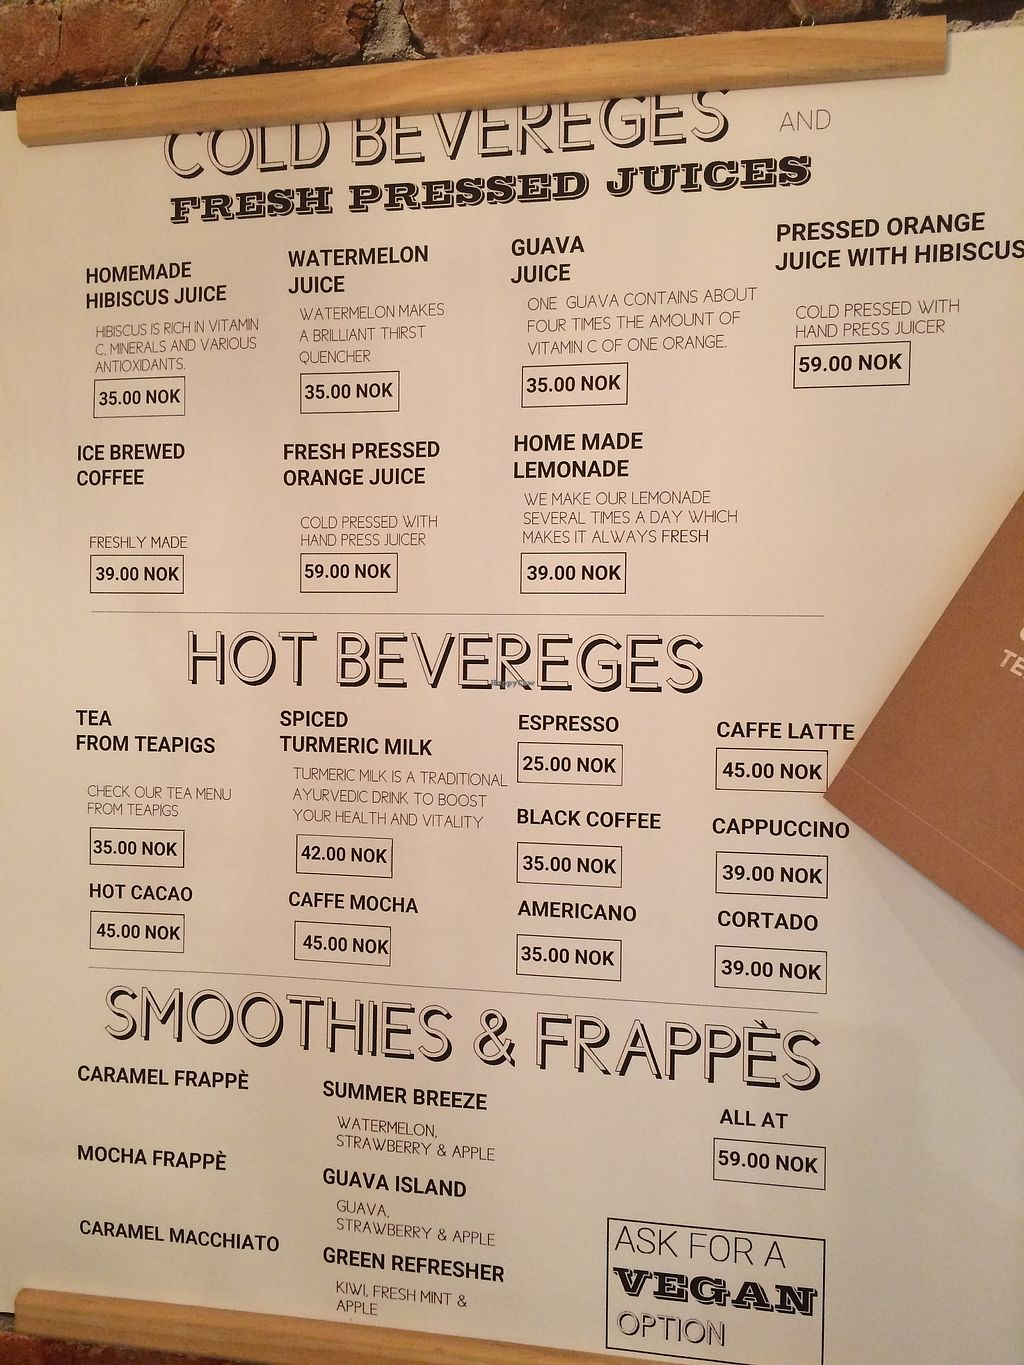 """Photo of Habits Coffee  by <a href=""""/members/profile/TDHill"""">TDHill</a> <br/>Fresh juices and smoothies menu <br/> October 23, 2017  - <a href='/contact/abuse/image/103452/317879'>Report</a>"""